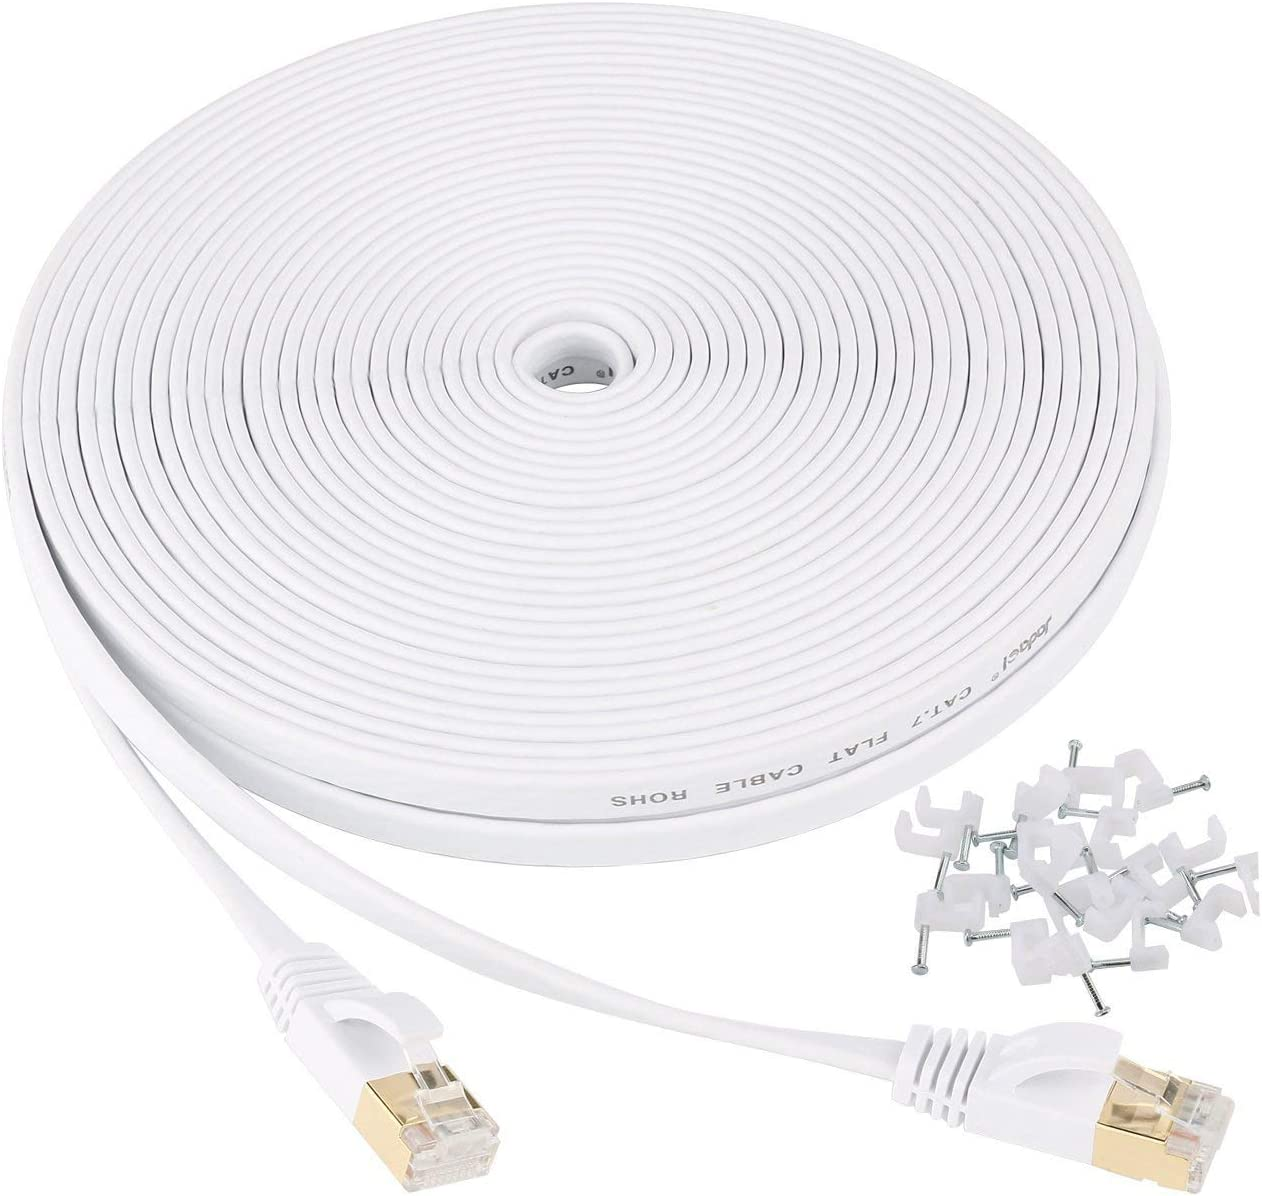 Cat 7 Ethernet Cable 25 ft Shielded - Solid Flat Internet Network Computer Patch Cord, Faster Than Cat5e/Cat5/cat6 Network, Slim Cat7 High Speed LAN Wire with Rj45 Connectors for Router, Modem – White: Computers & Accessories